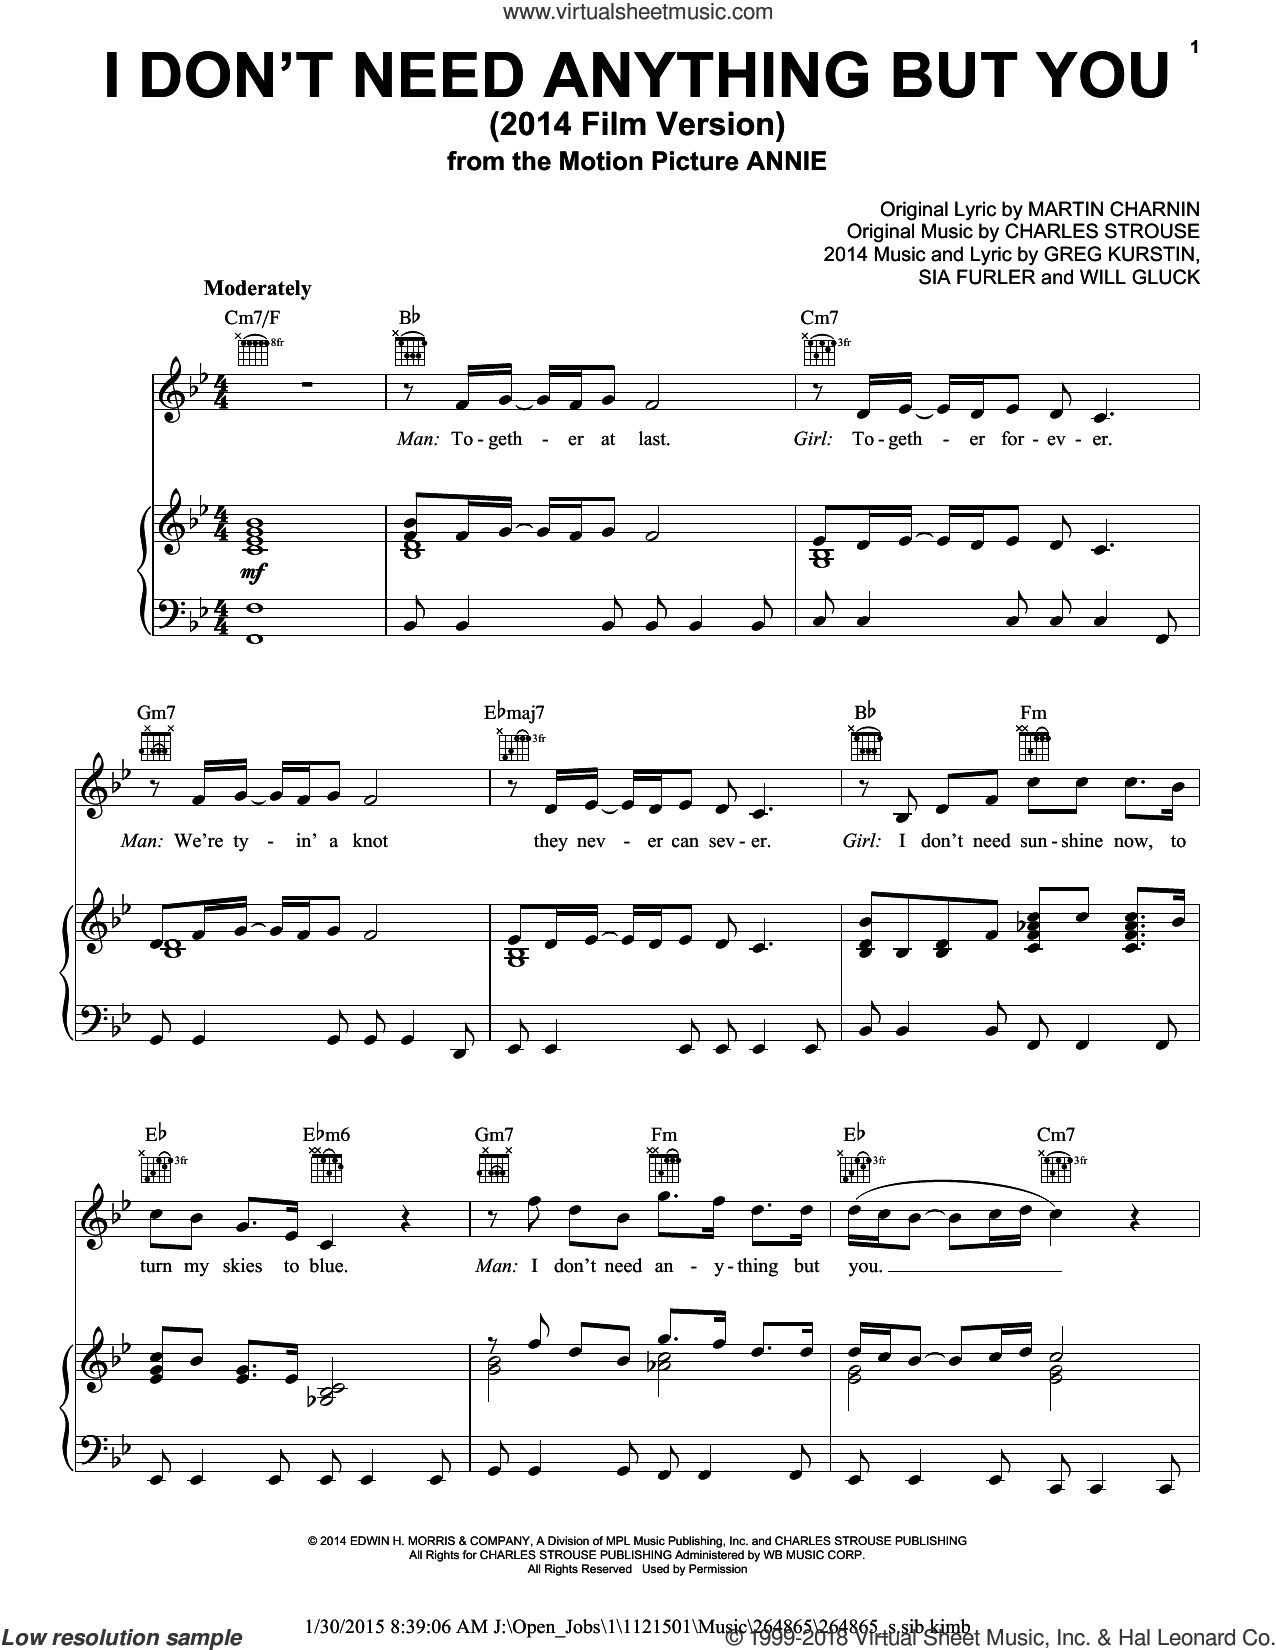 I Don't Need Anything But You (2014 Film Version) sheet music for voice, piano or guitar by Charles Strouse, Christoph Willibald Gluck, Greg Kurstin, Martin Charnin and Sia Furler, intermediate skill level